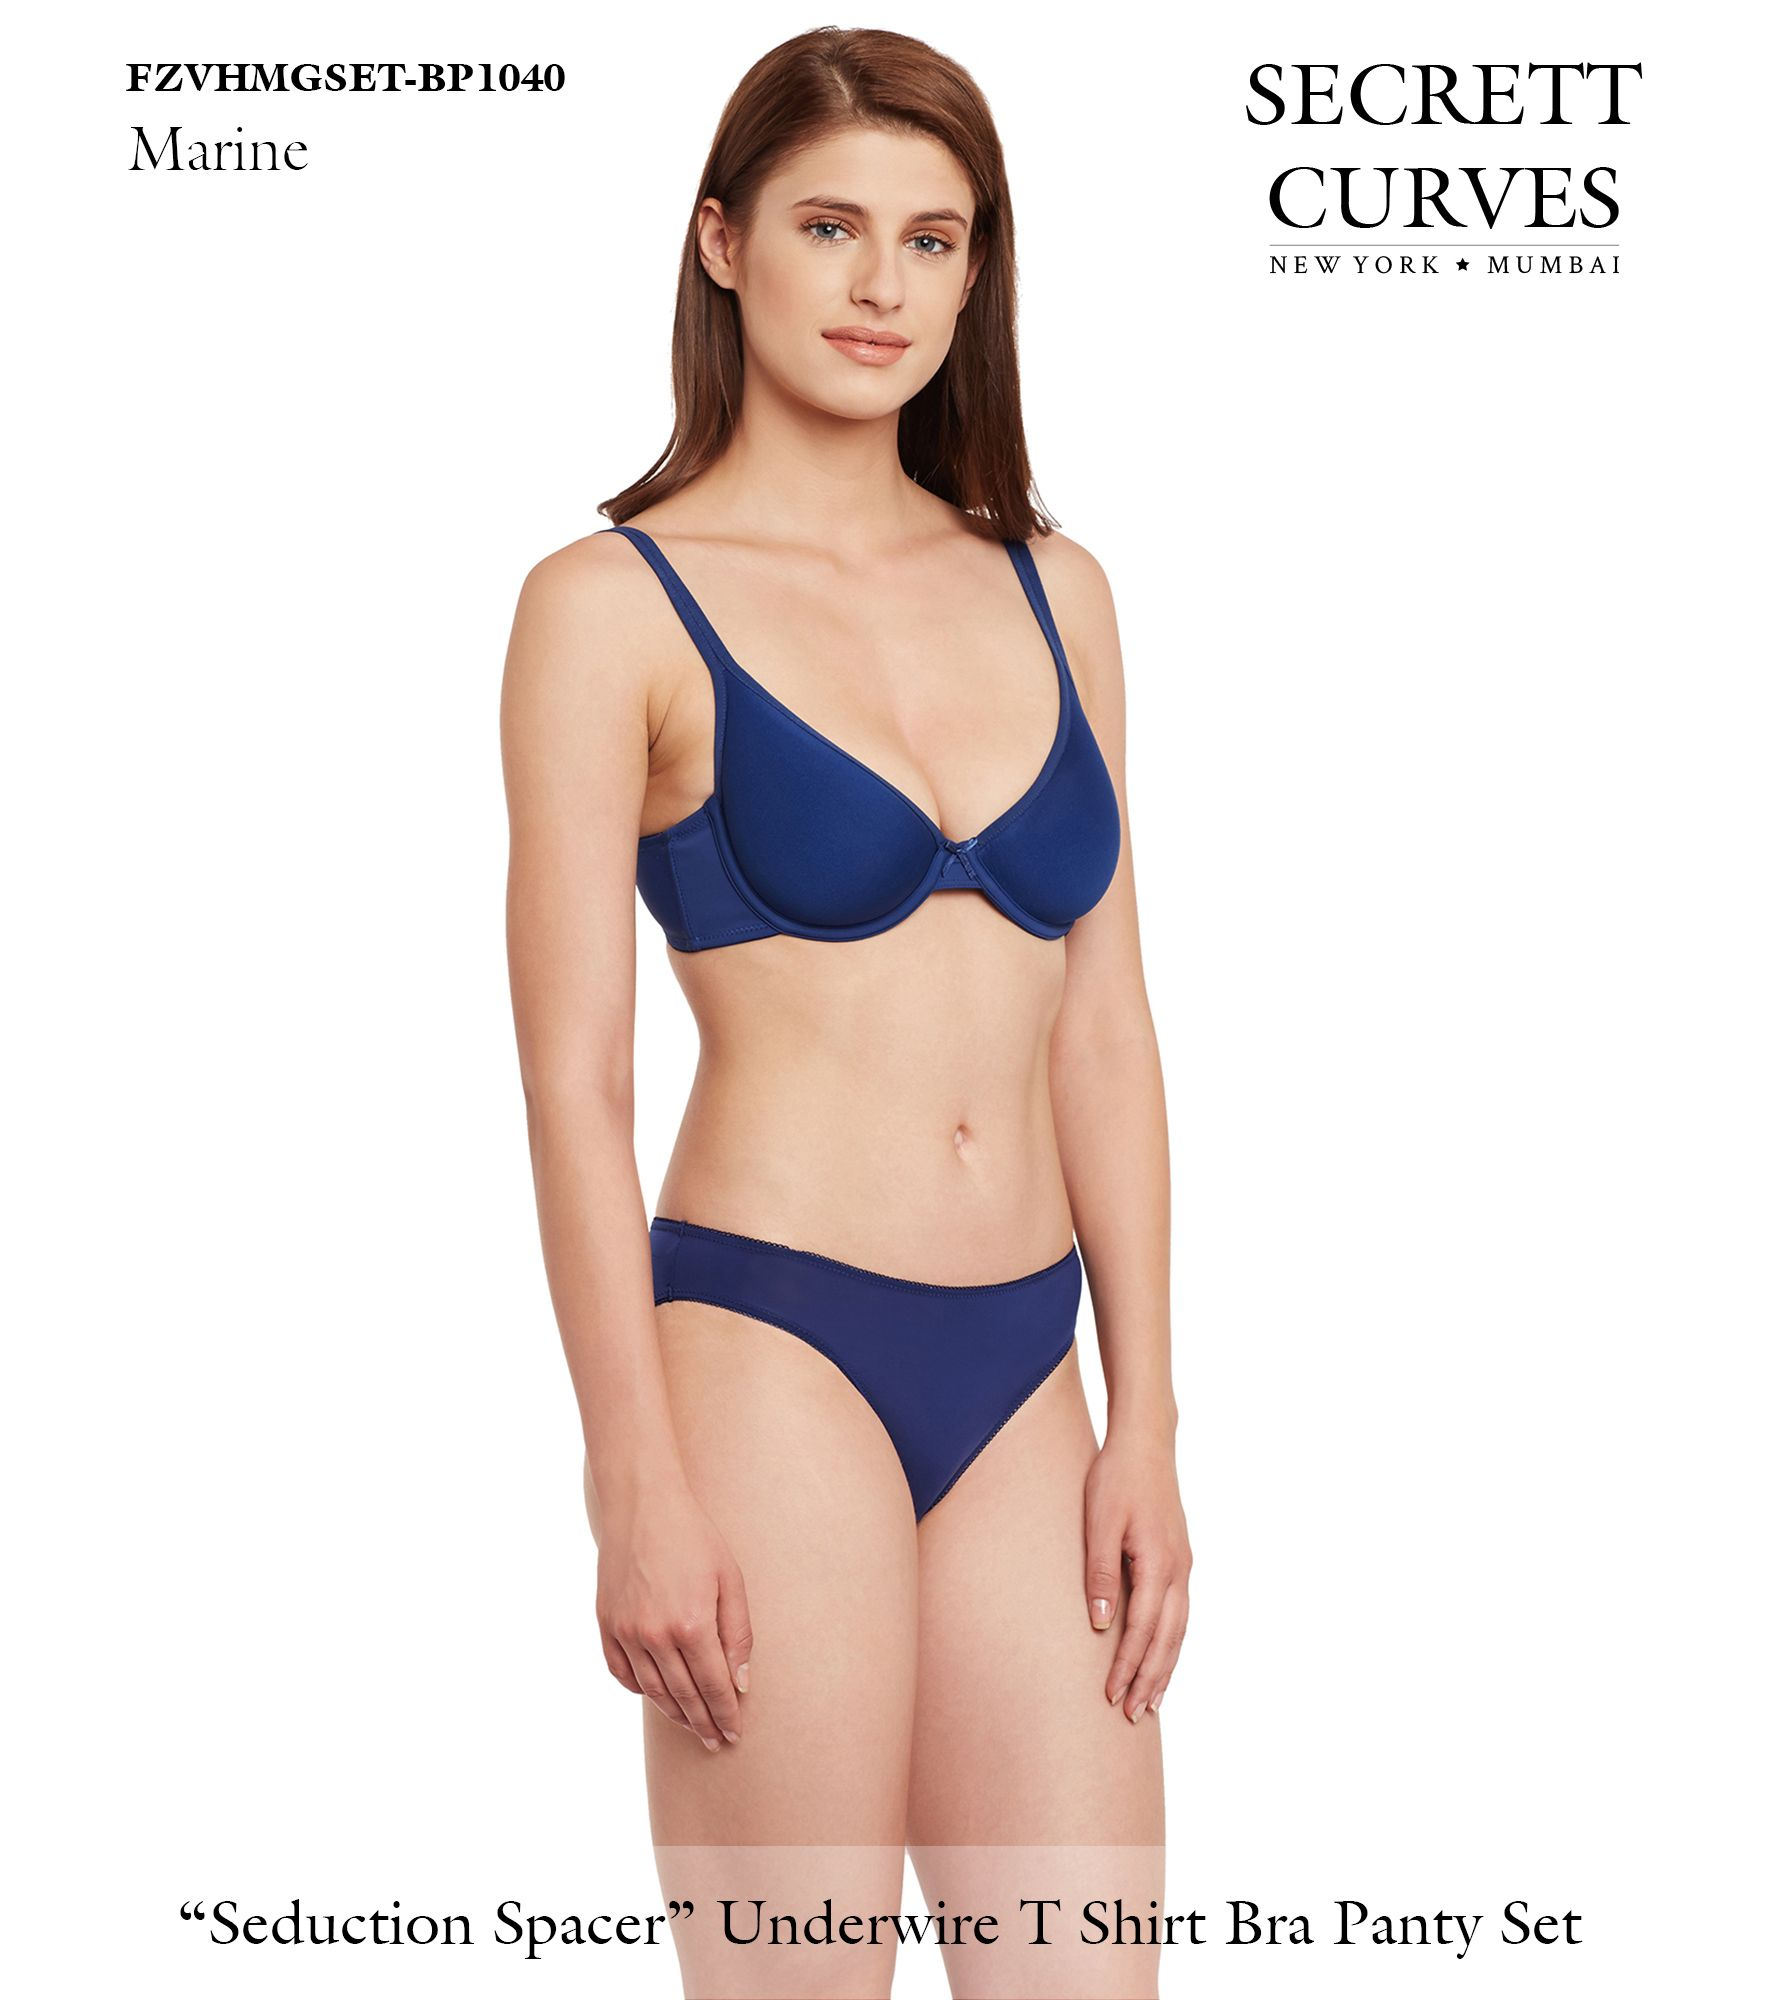 75c7df63e8 Secrett Curves Seduction Spacer Underwire Full Coverage Padded Cup T Shirt  Bra Panty Set Seduction Spacer Bra by Secrett Curves from New York  Our  Seduction ...